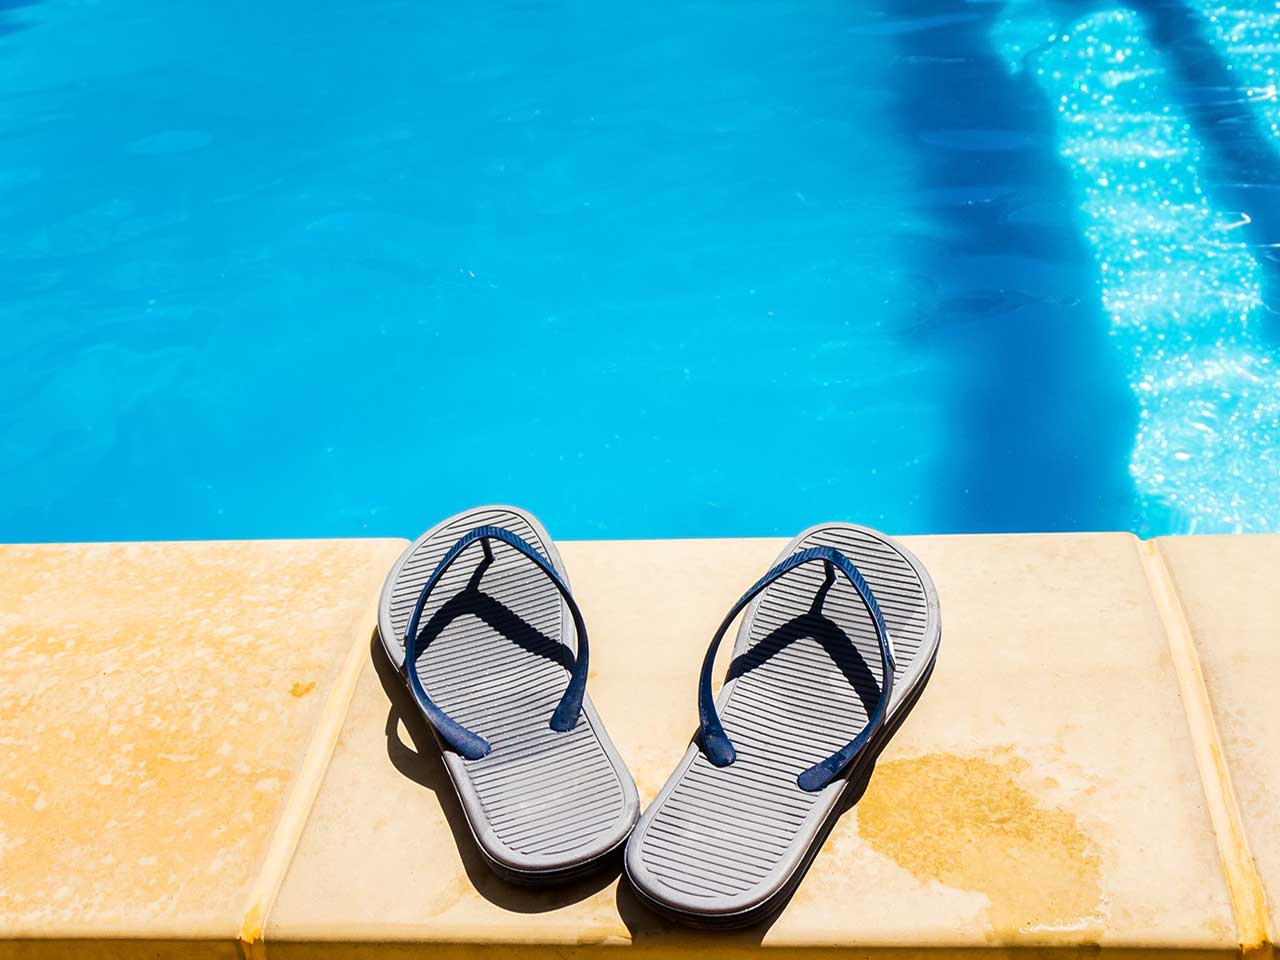 Flip flop shoes by a swimming pool